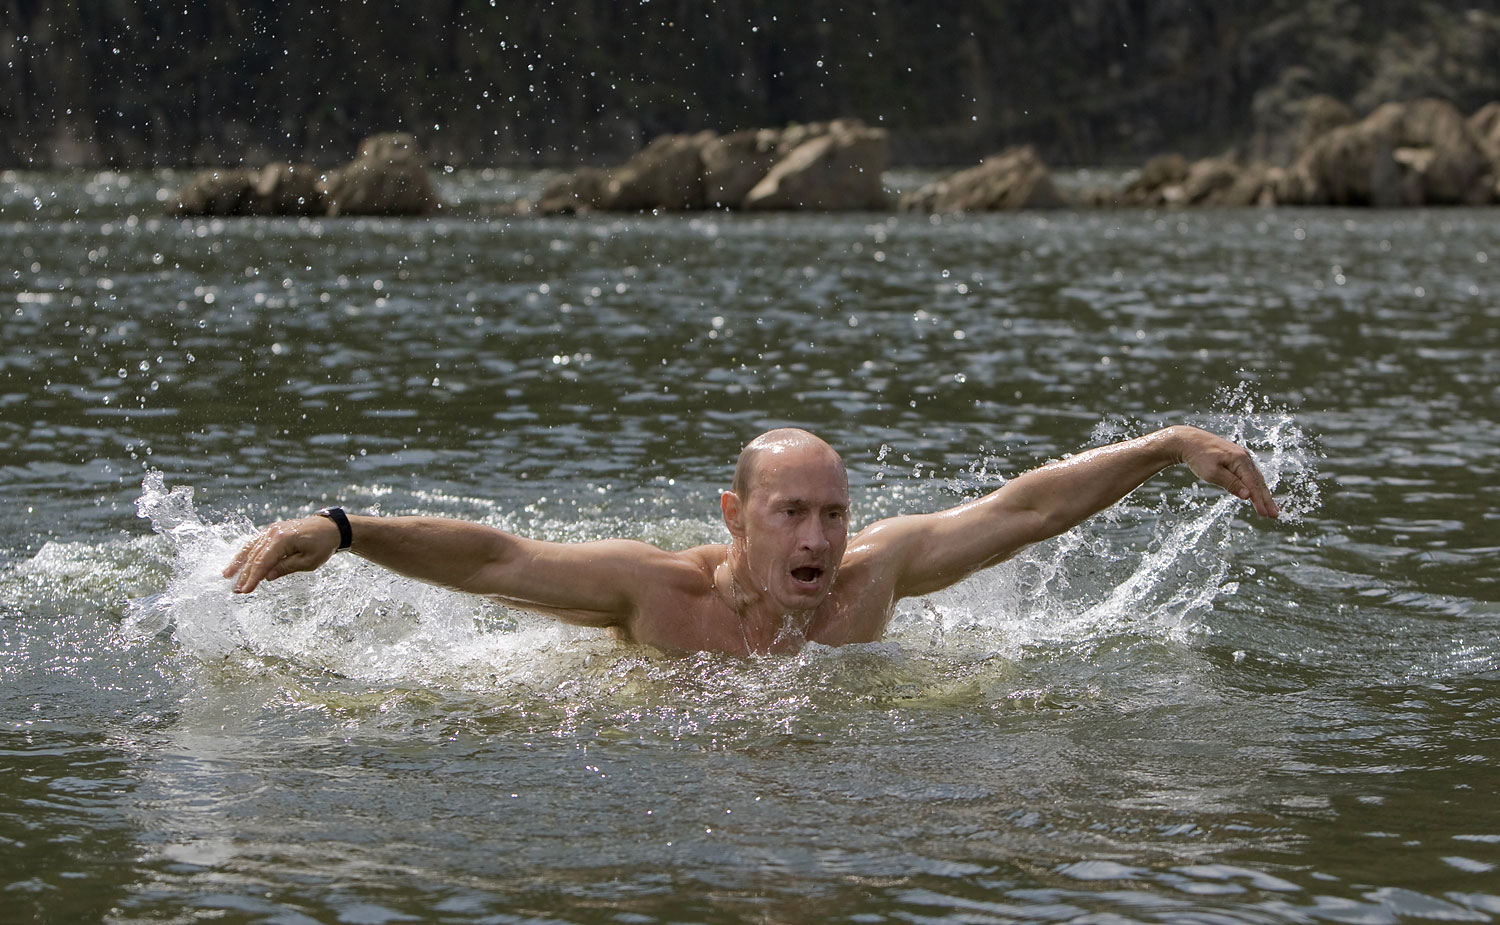 Putin prides himself on staying in peak physical condition, Aug. 3, 2009.